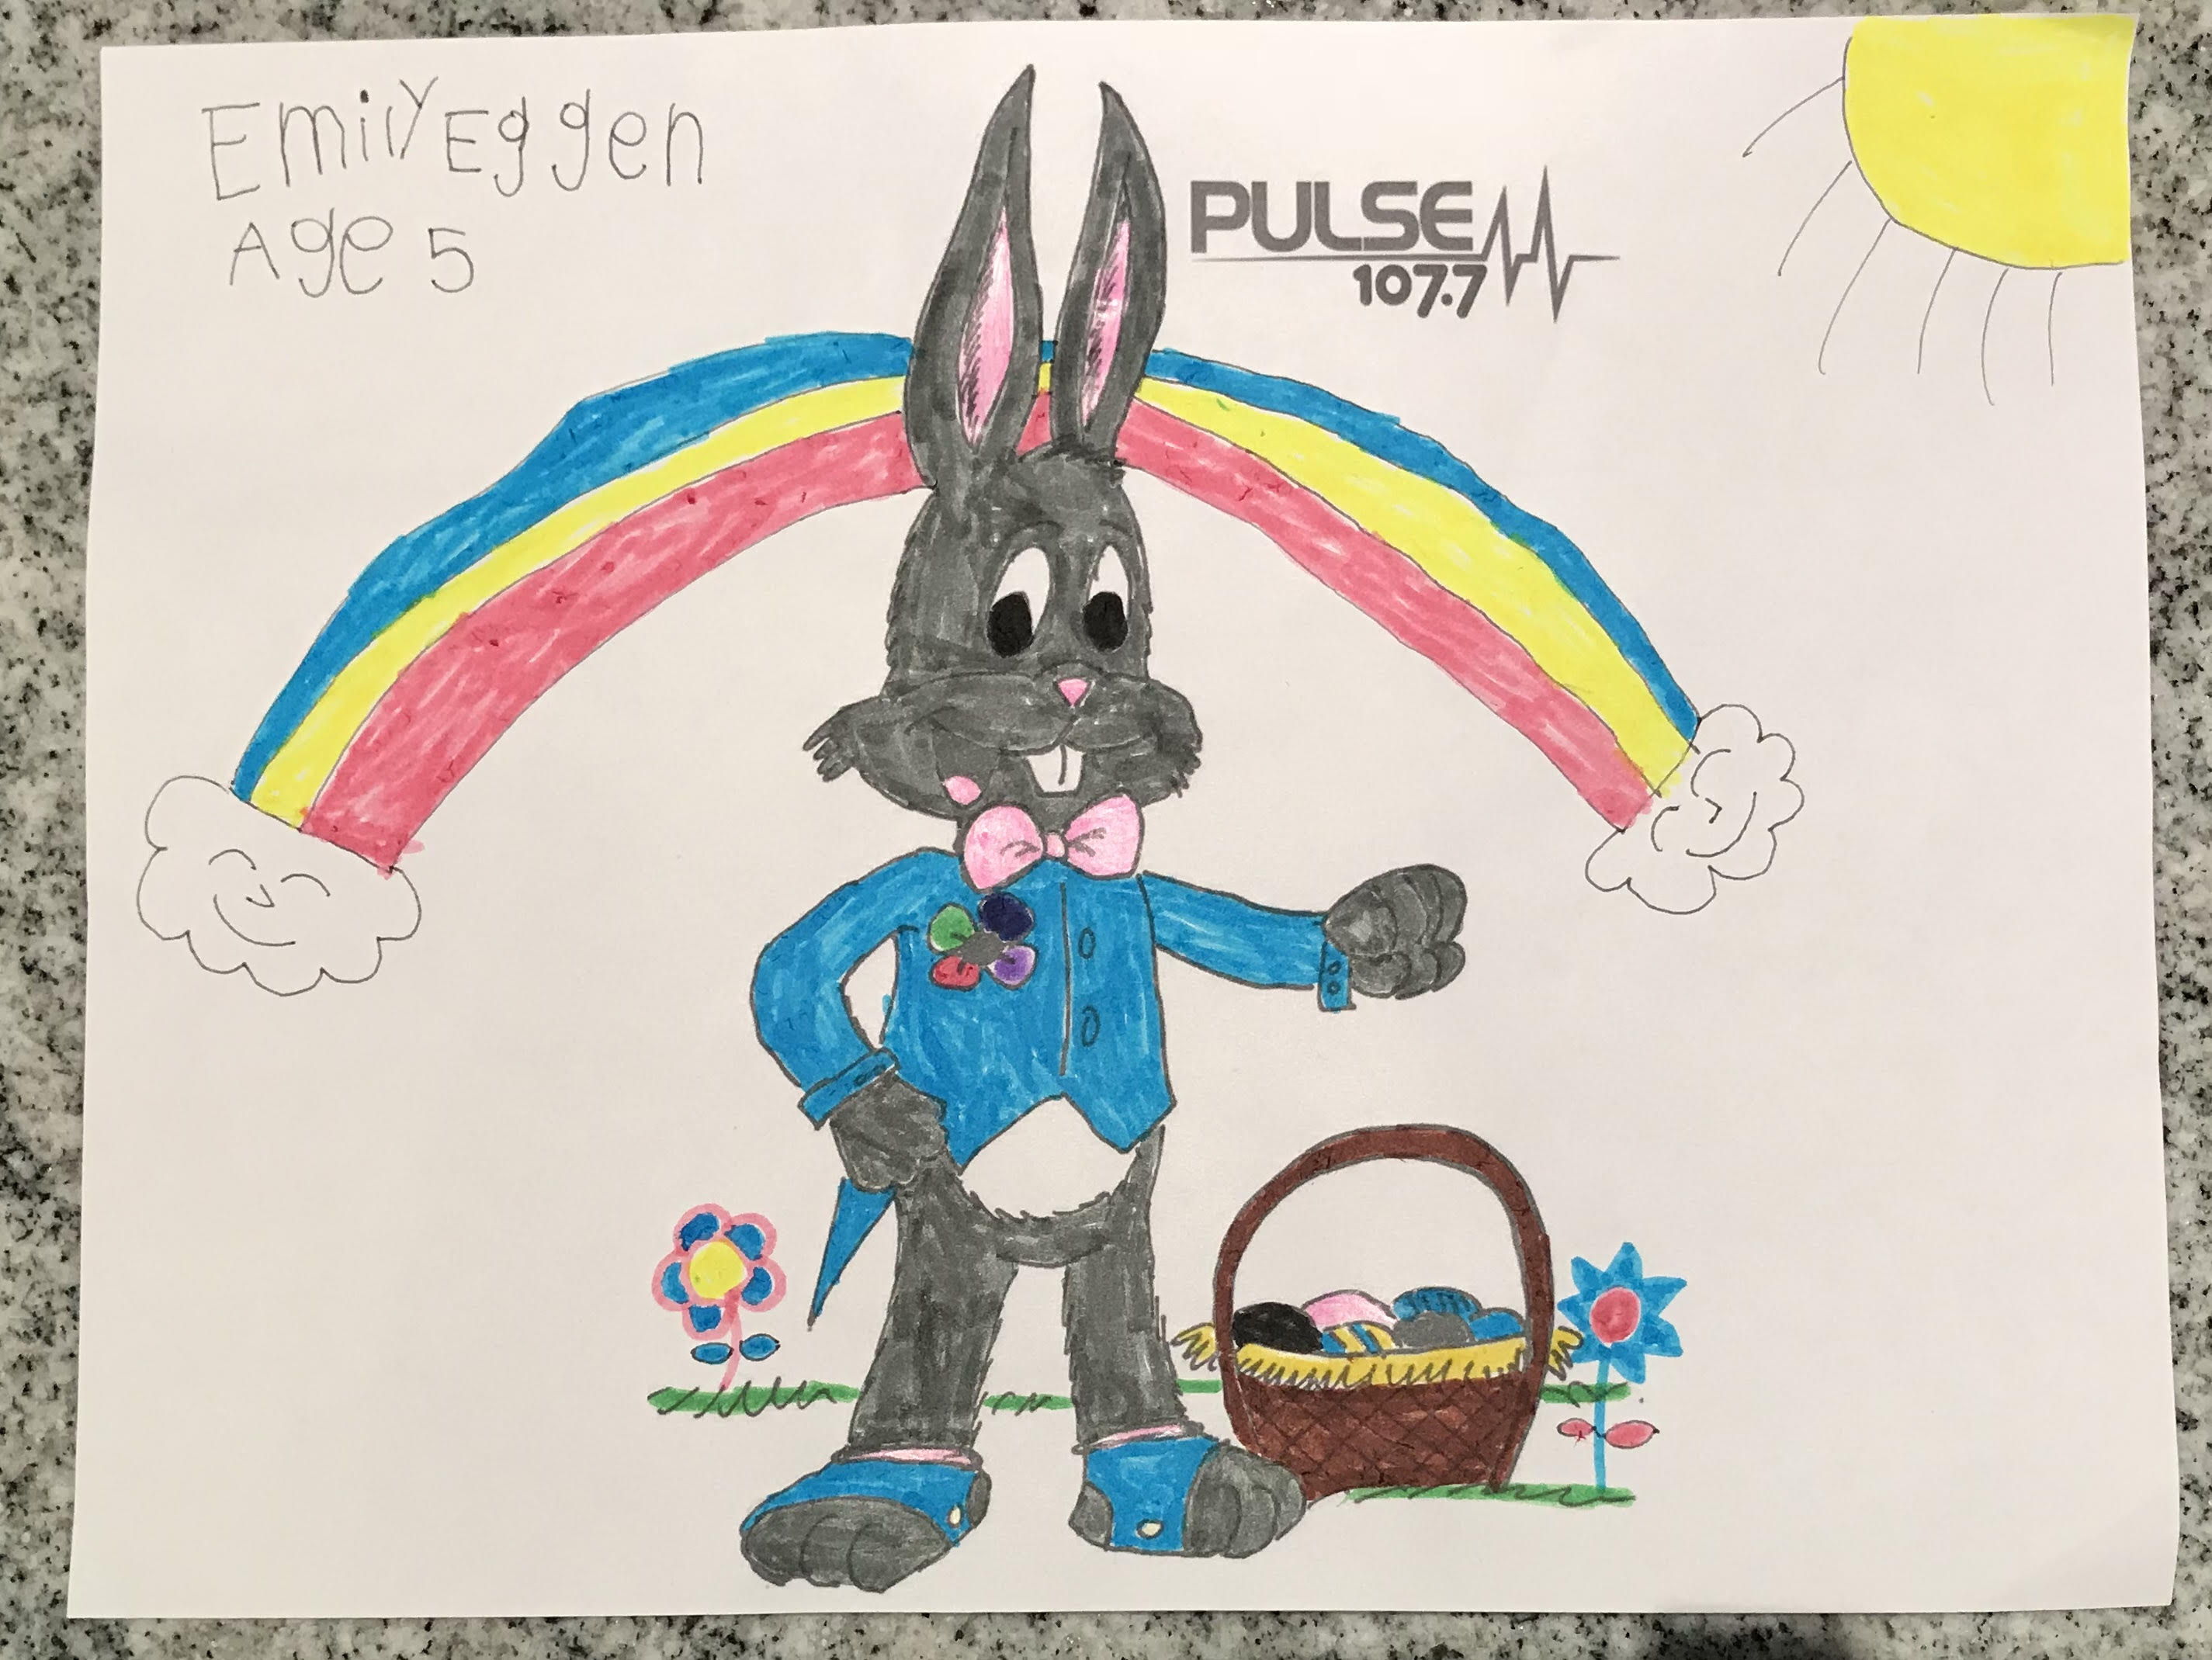 Congratulations to PULSE FM's Easter Coloring Contest Winner